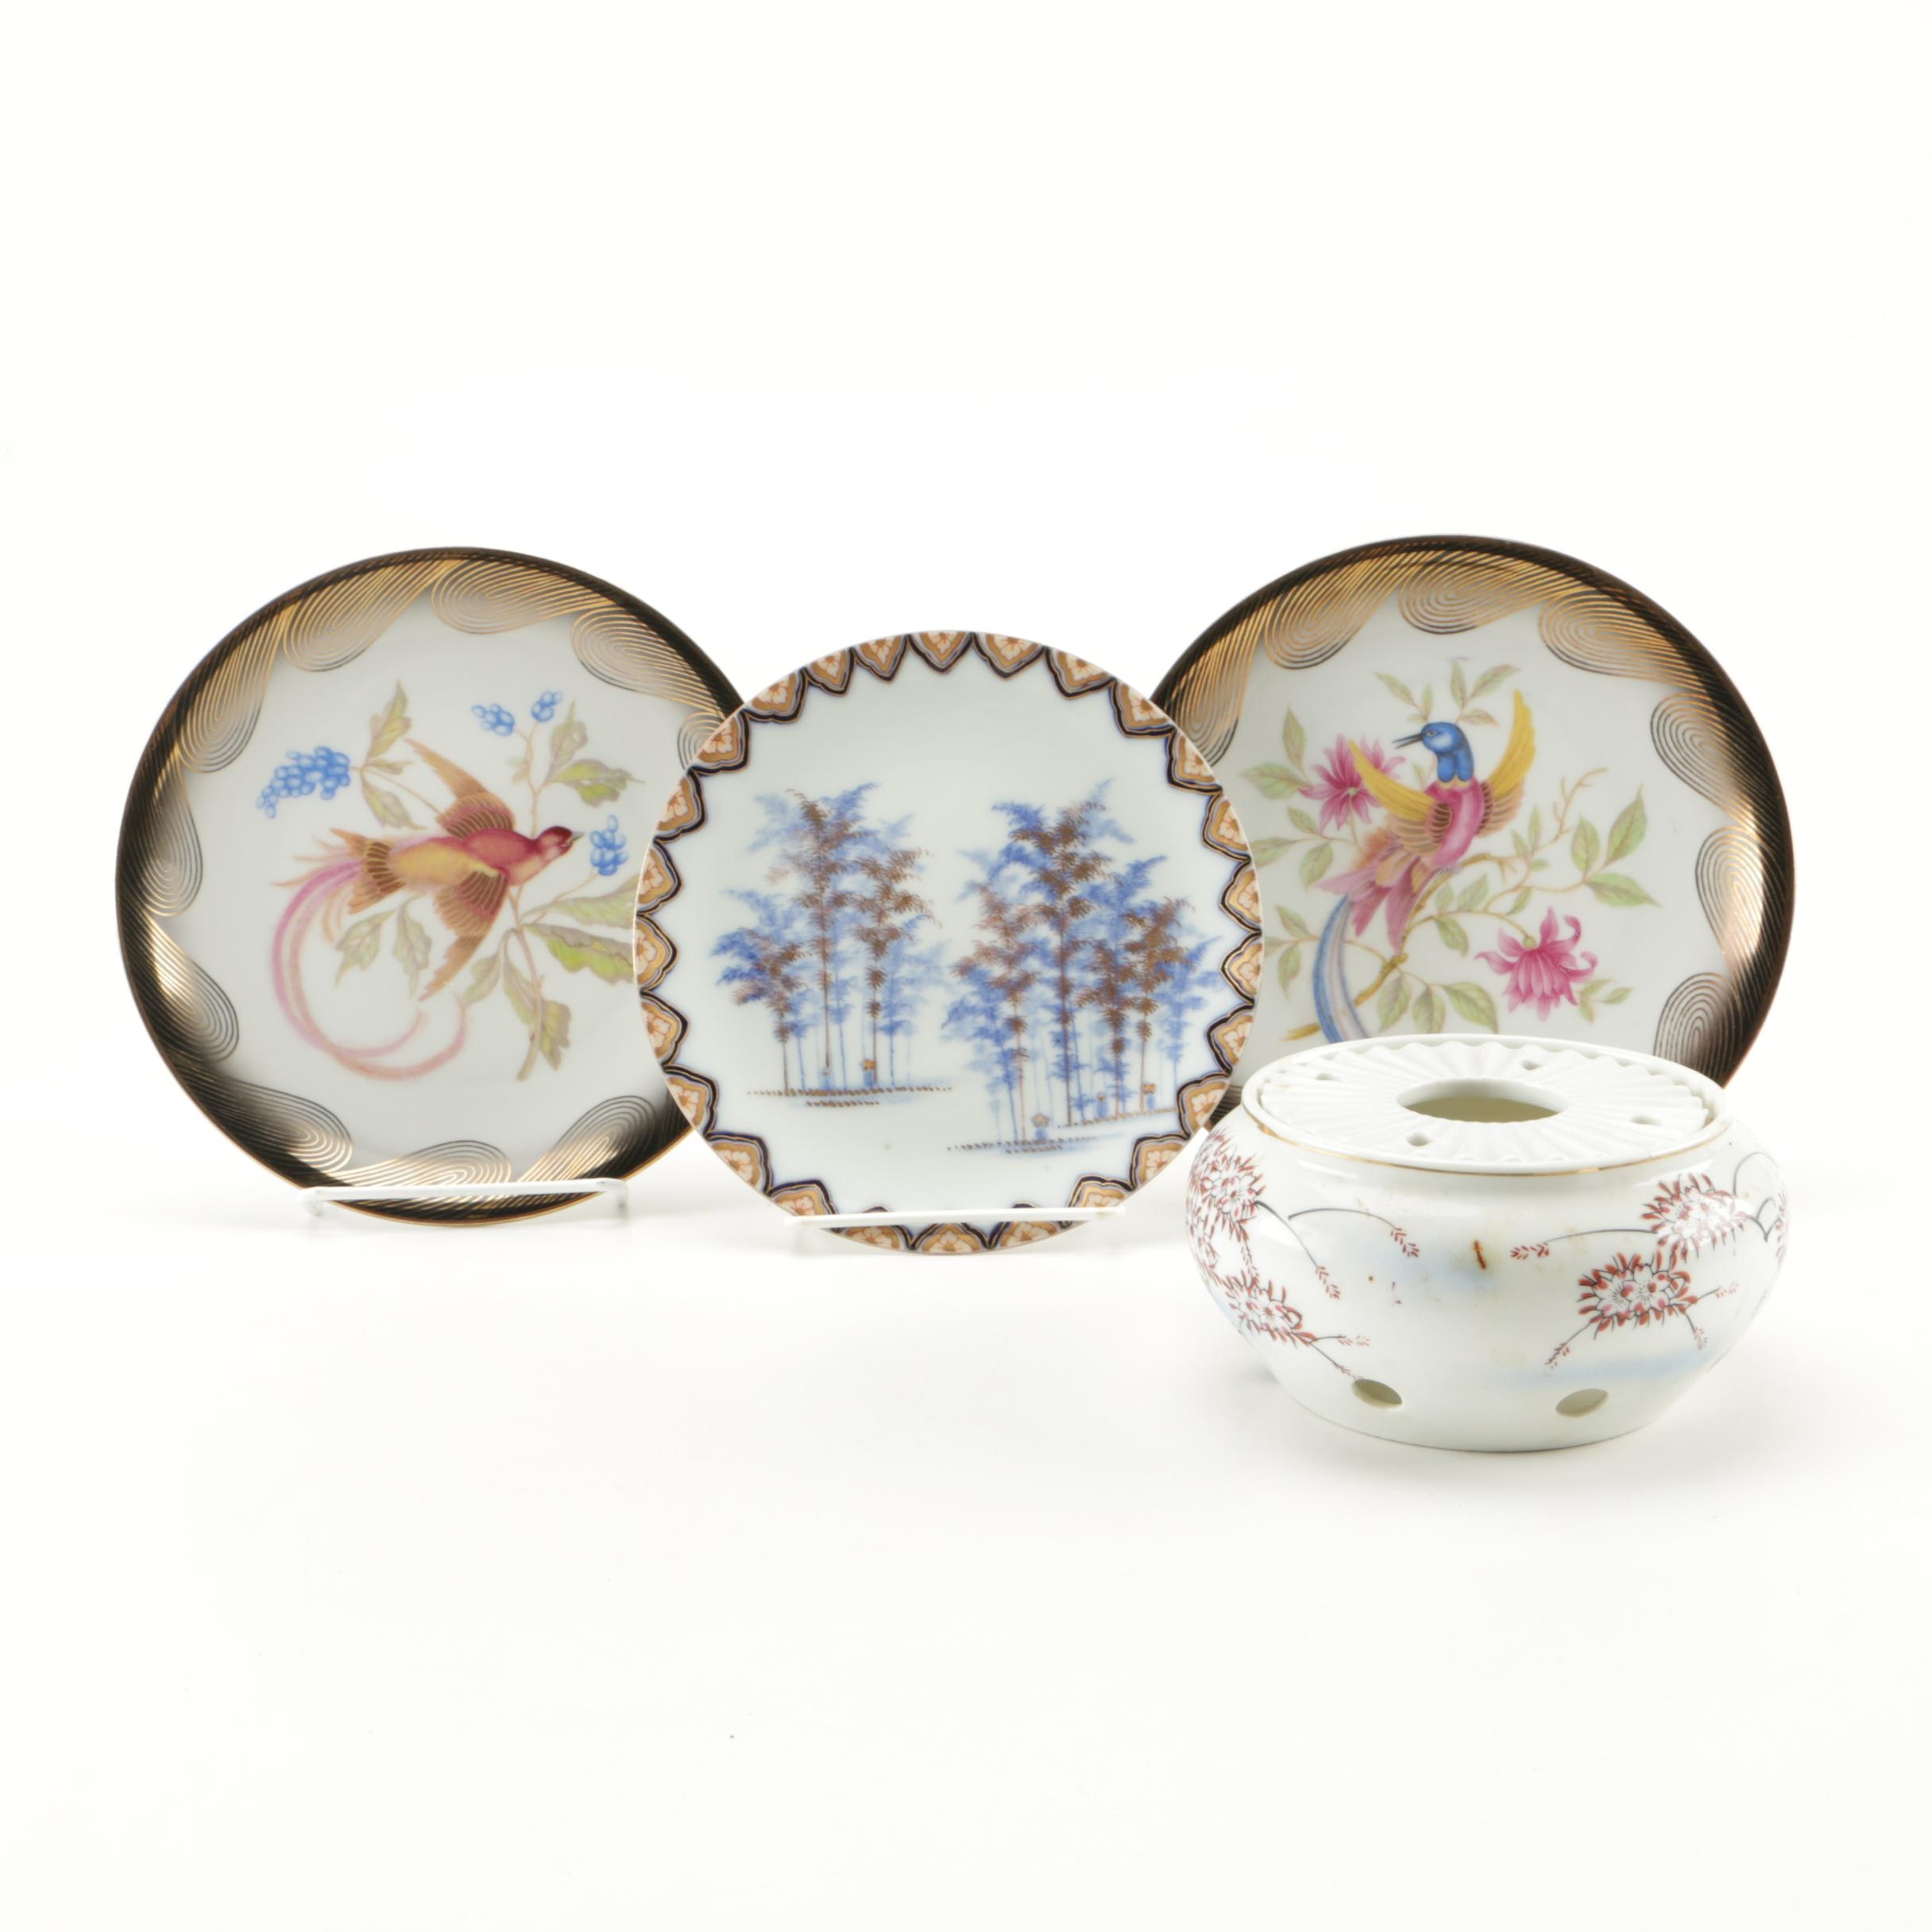 Collection of Four Porcelain Decorative Objects